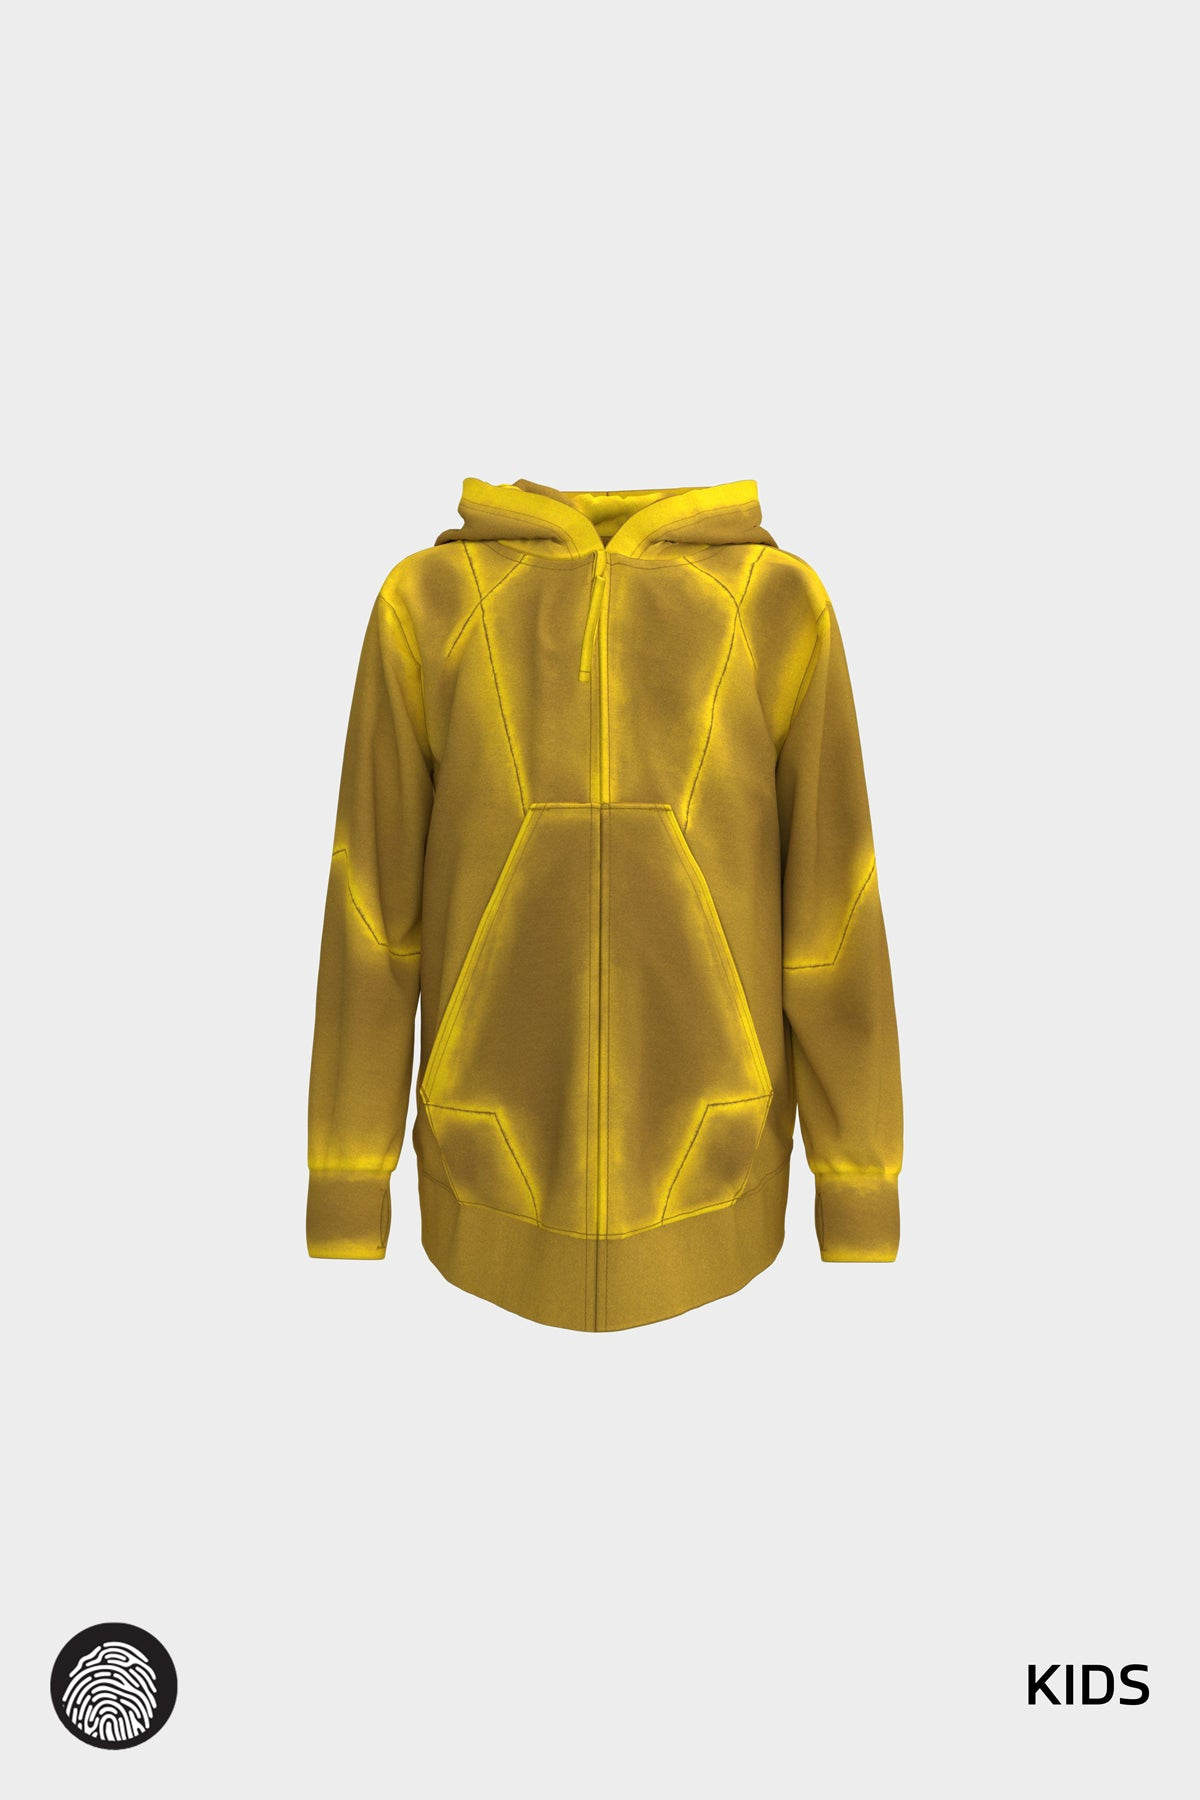 NEXUS 001 / ZIP FRONT HOODIE IN SULFUR | MOON/5UN